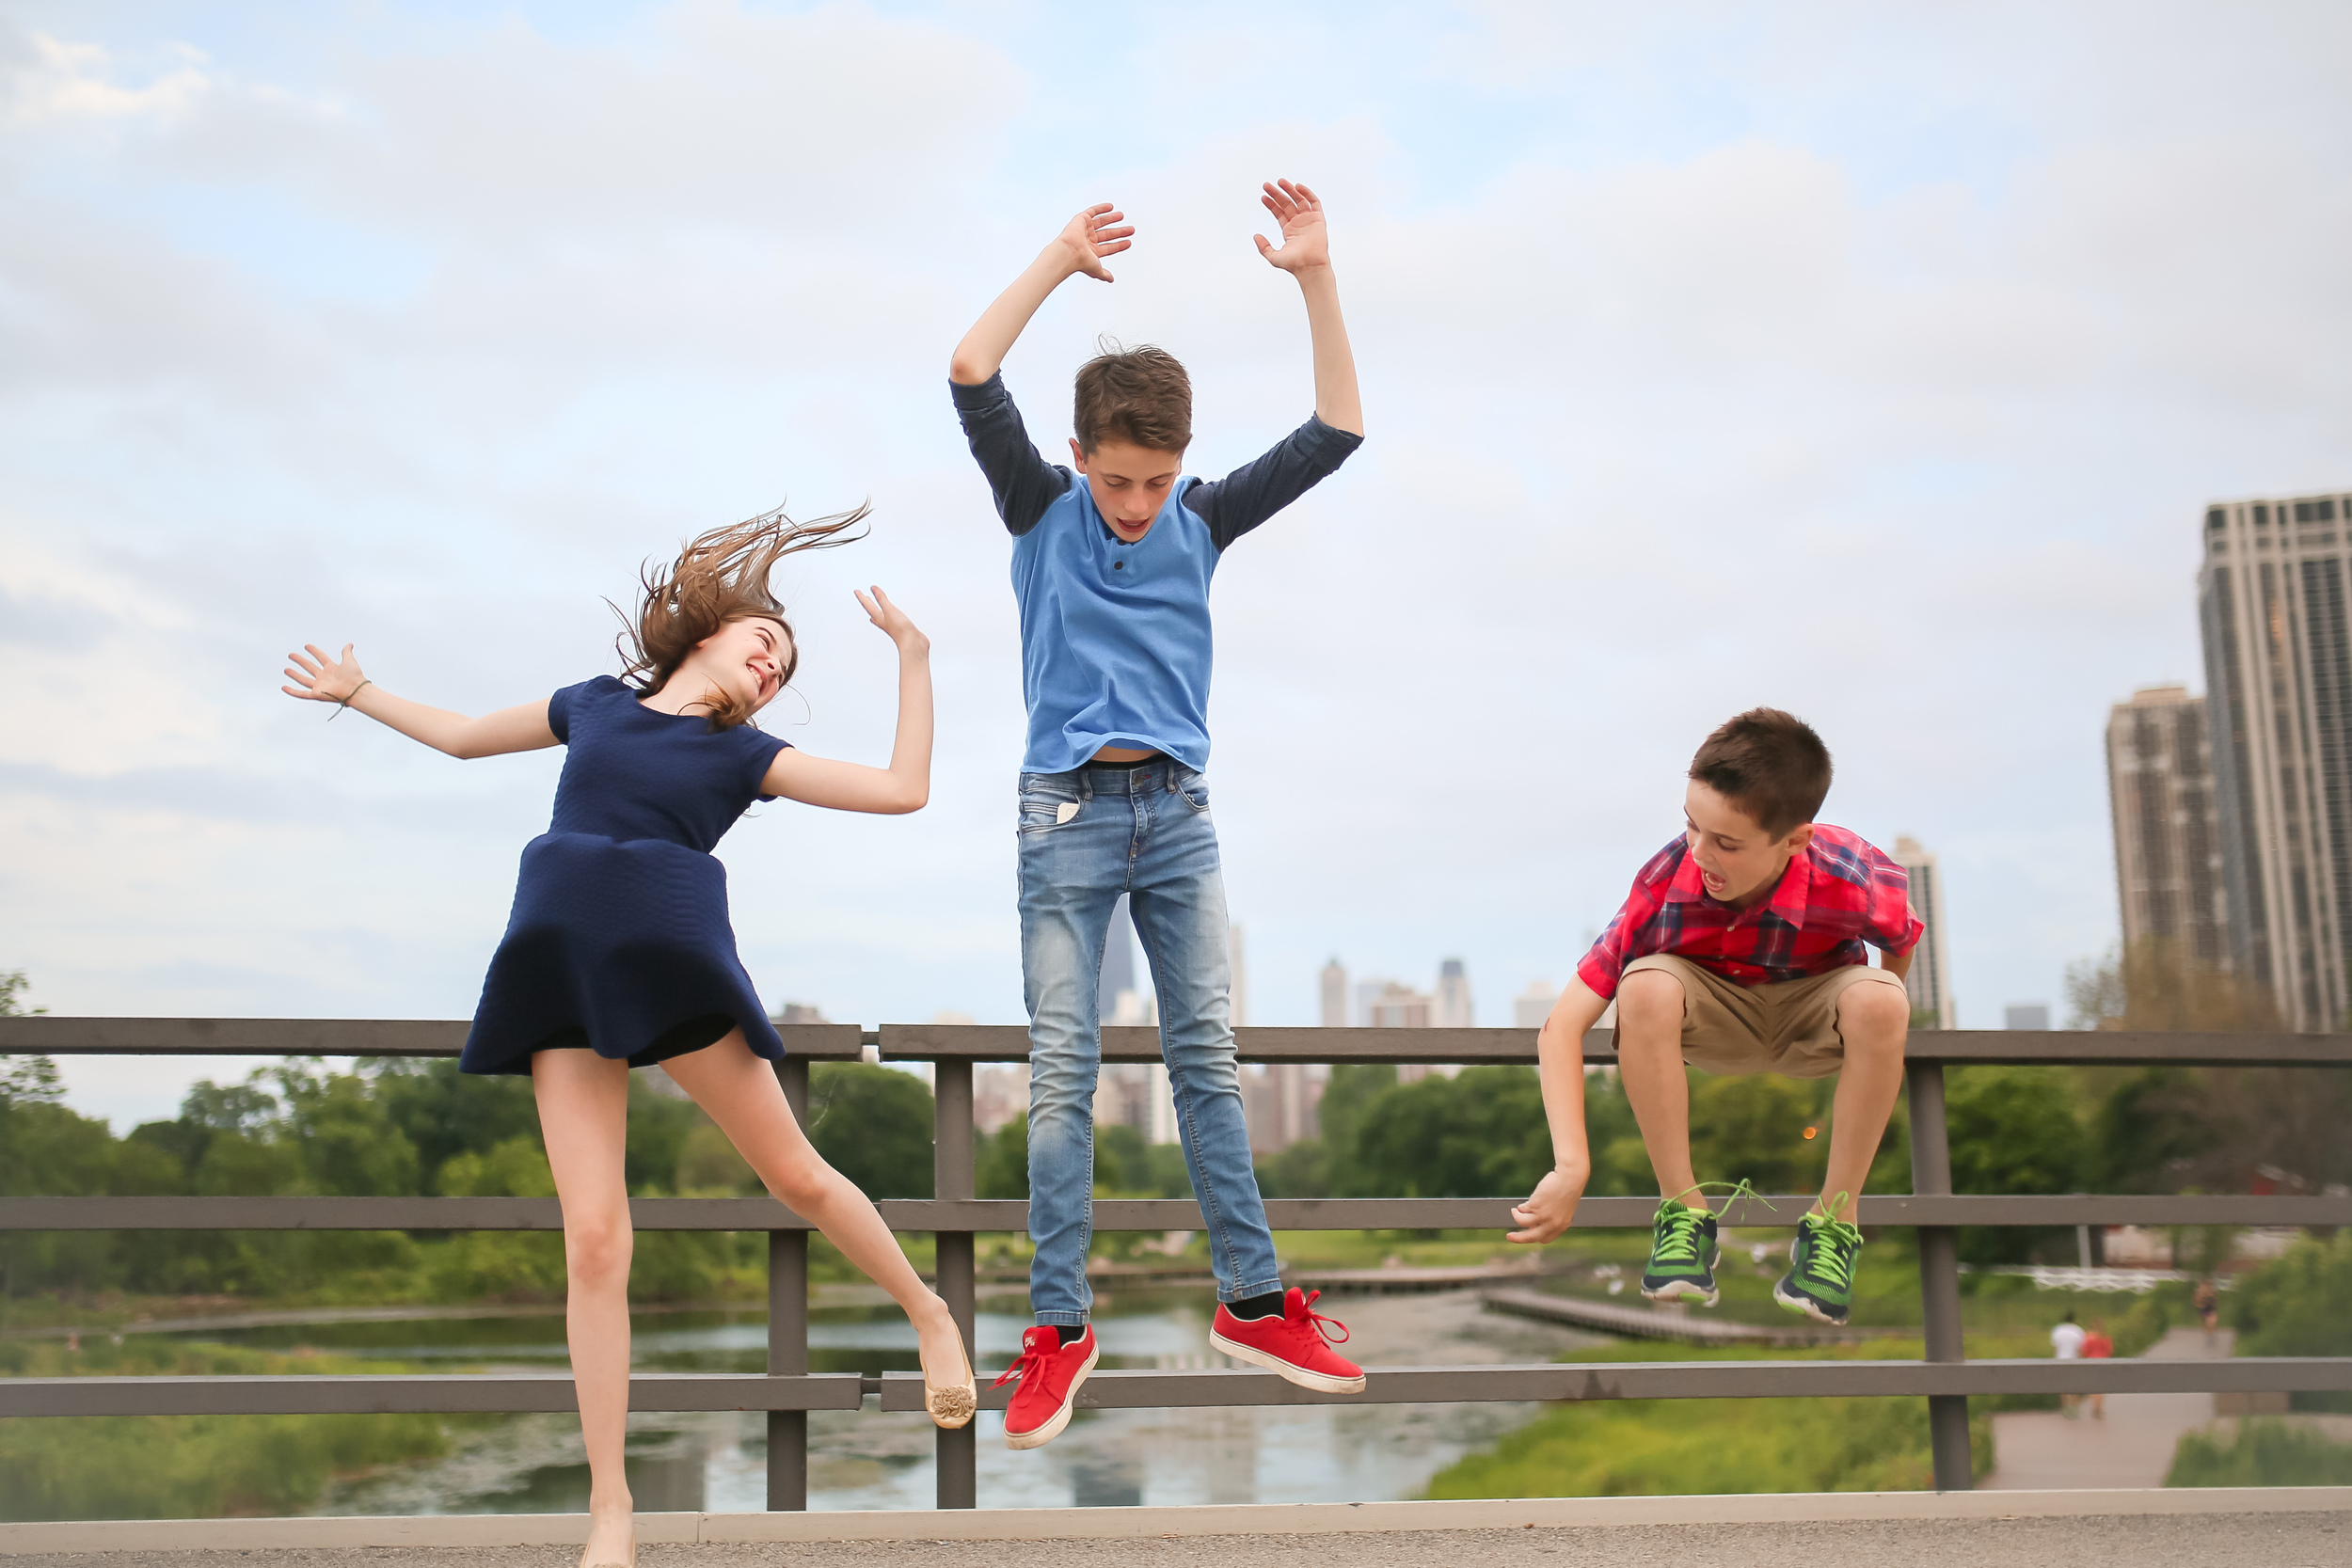 chicago kids jumping skyline